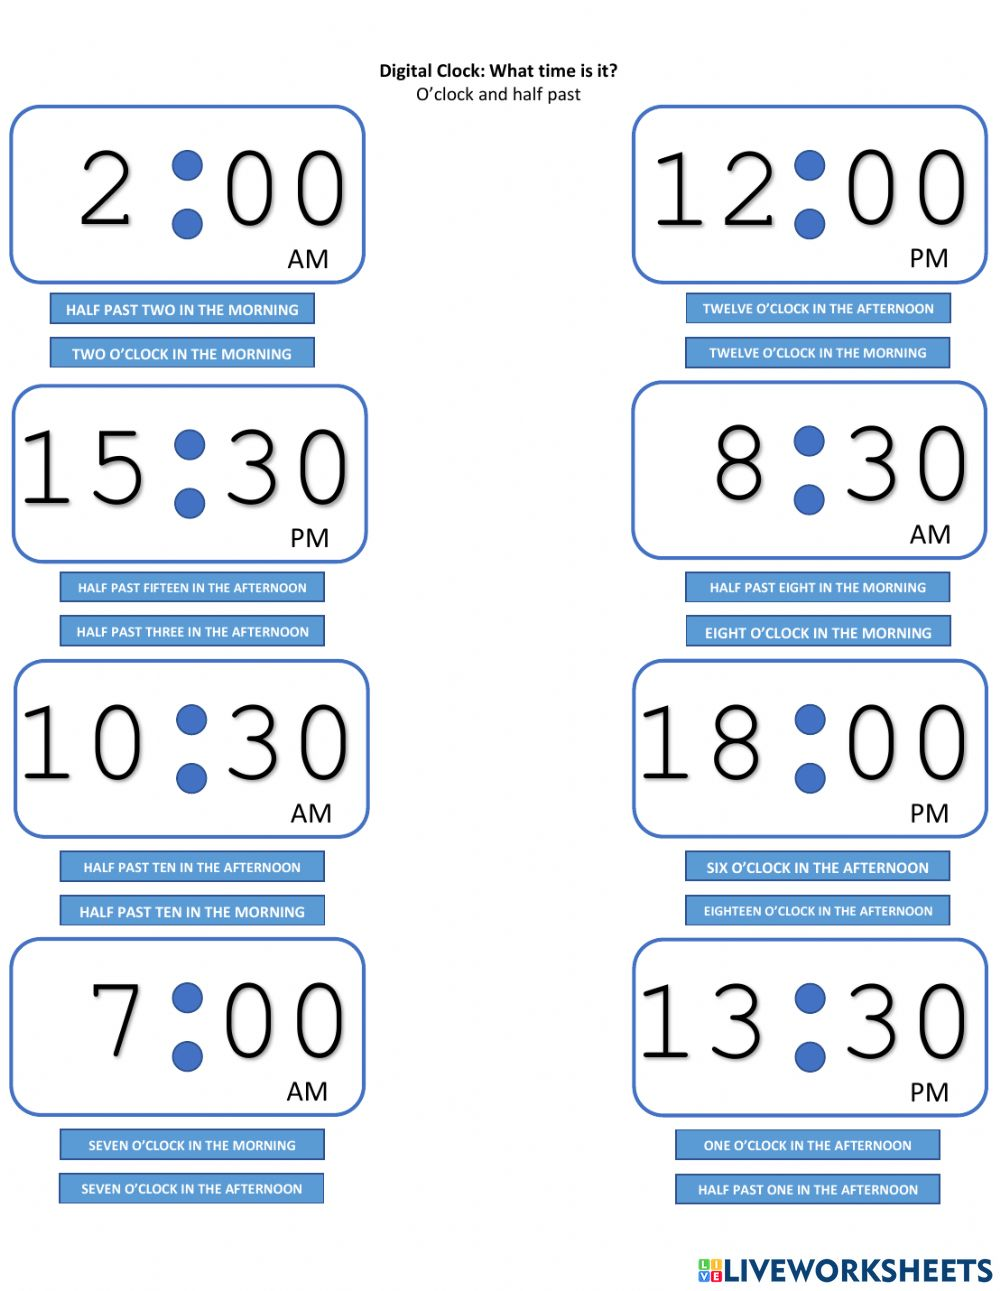 hight resolution of Digital Clocks: What time is it? worksheet